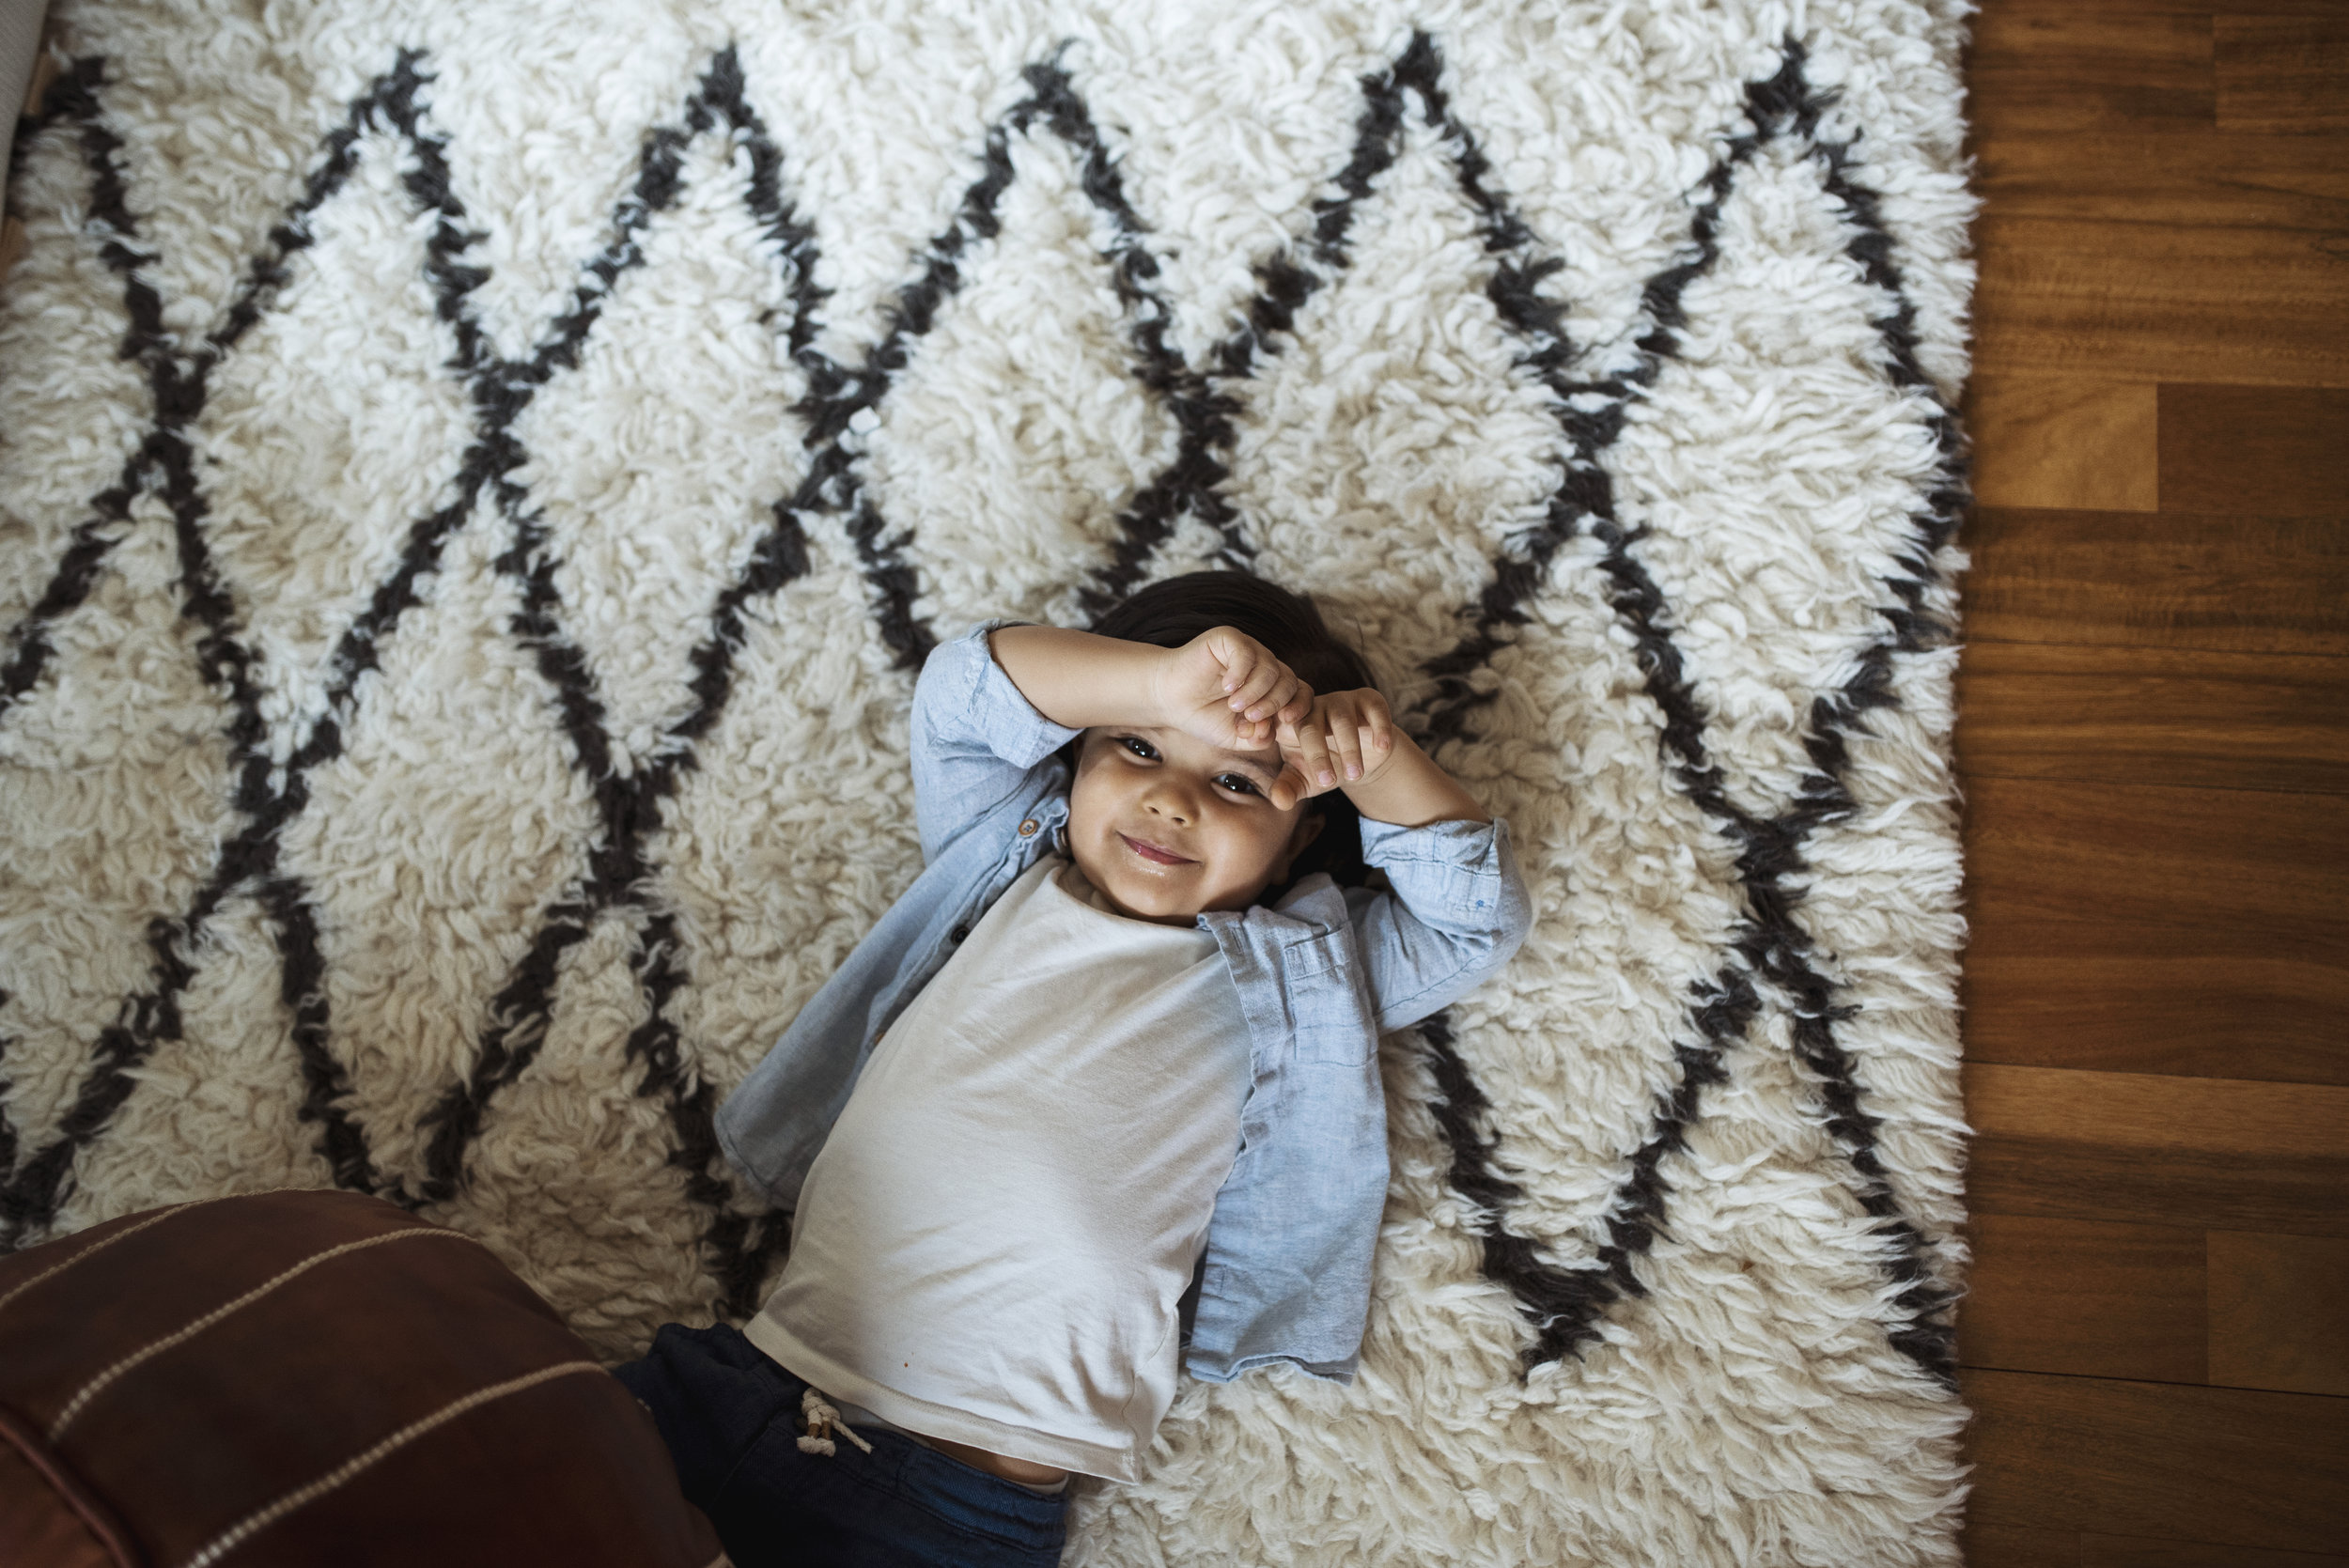 Newborn photographer Seattle boy is lying on rug smiling